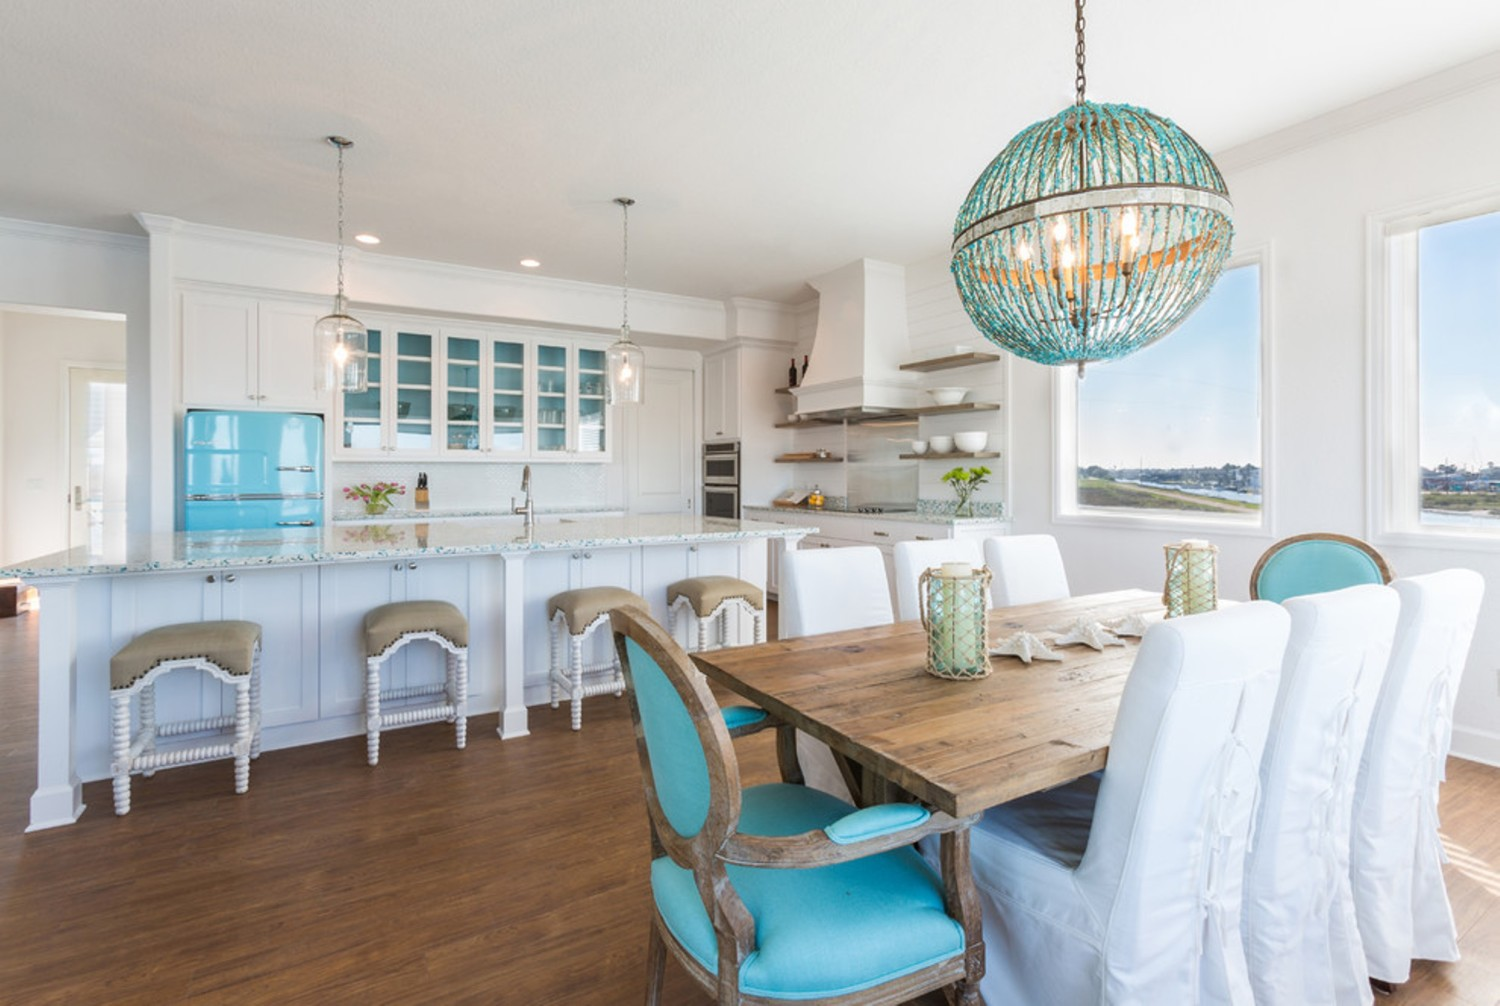 Aksen dapur Beach House Retreat di Houston (Sumber: houzz.com)